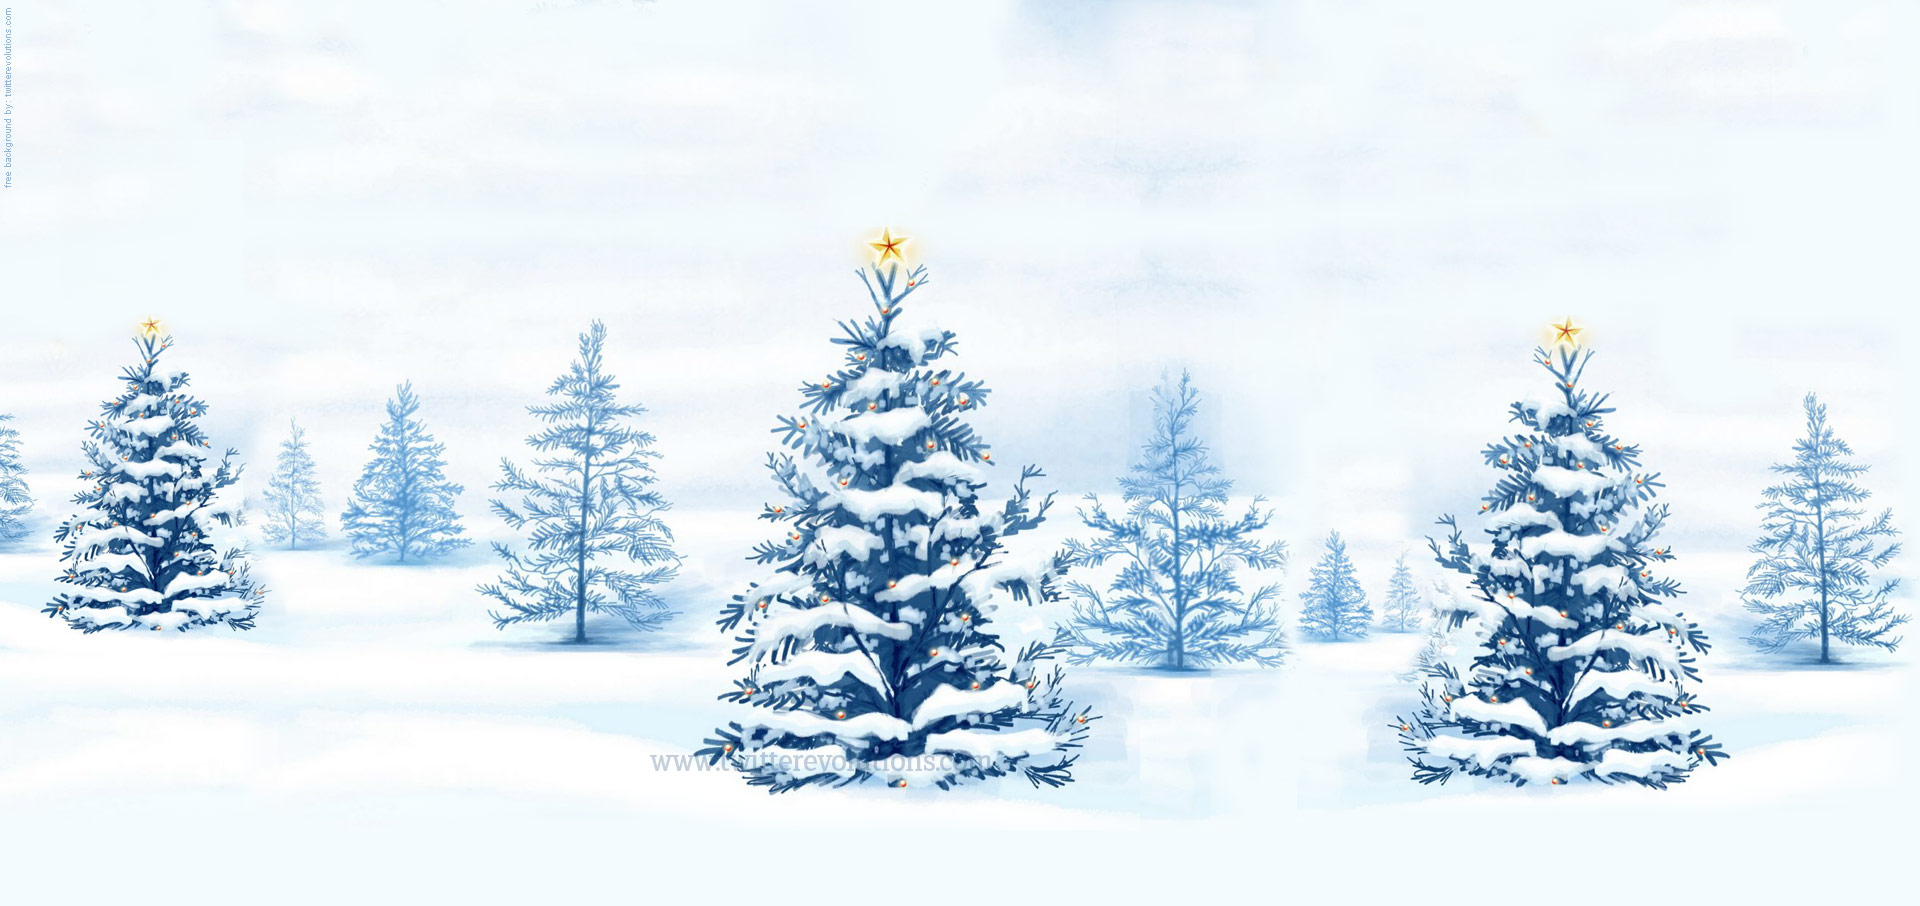 Winter Forest Scene Clipart - Clipart Kid